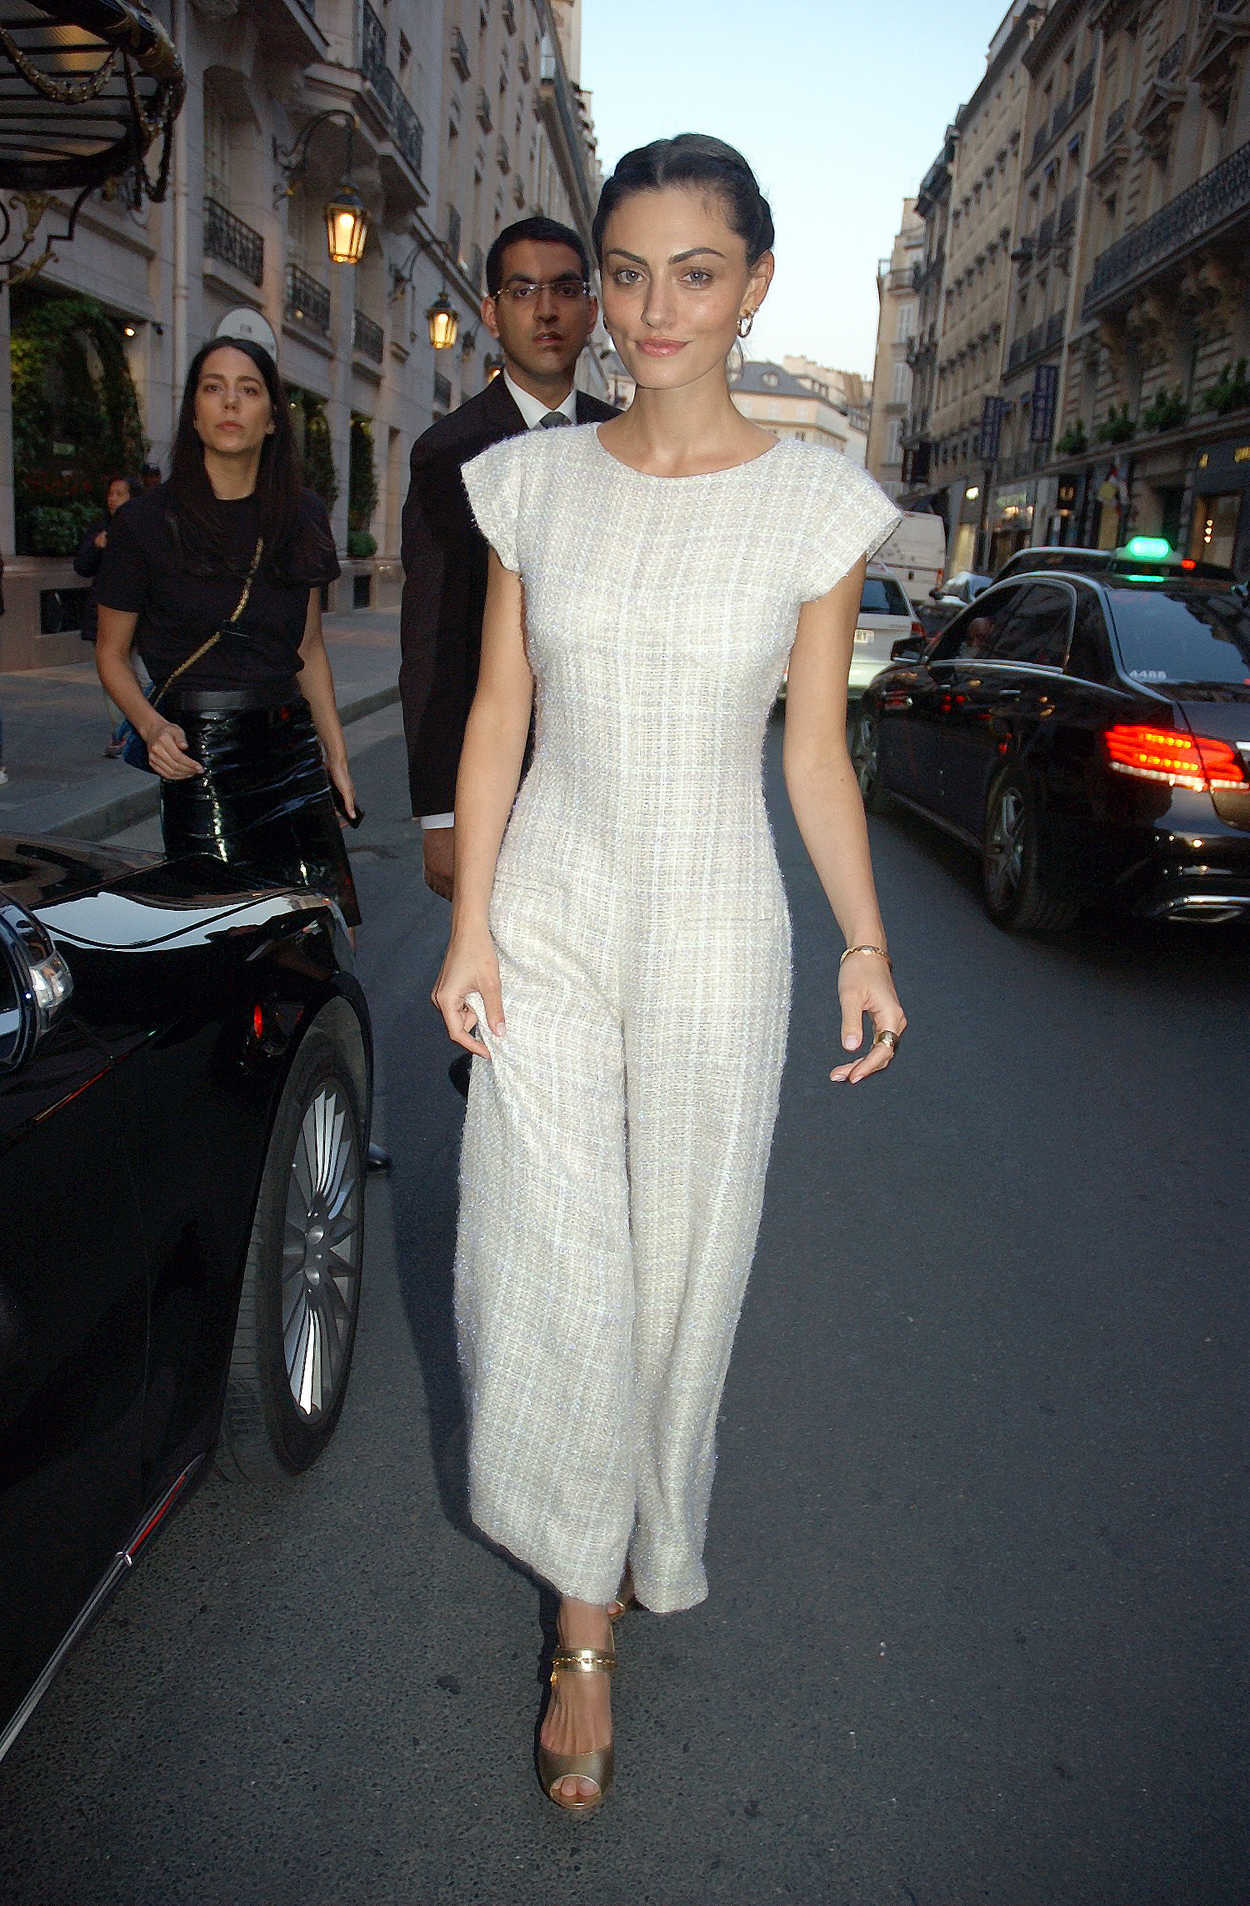 Phoebe Tonkin Attends The Chanel Cruise 2018 2019 Collection At Le Grand Palais In Paris 05 03